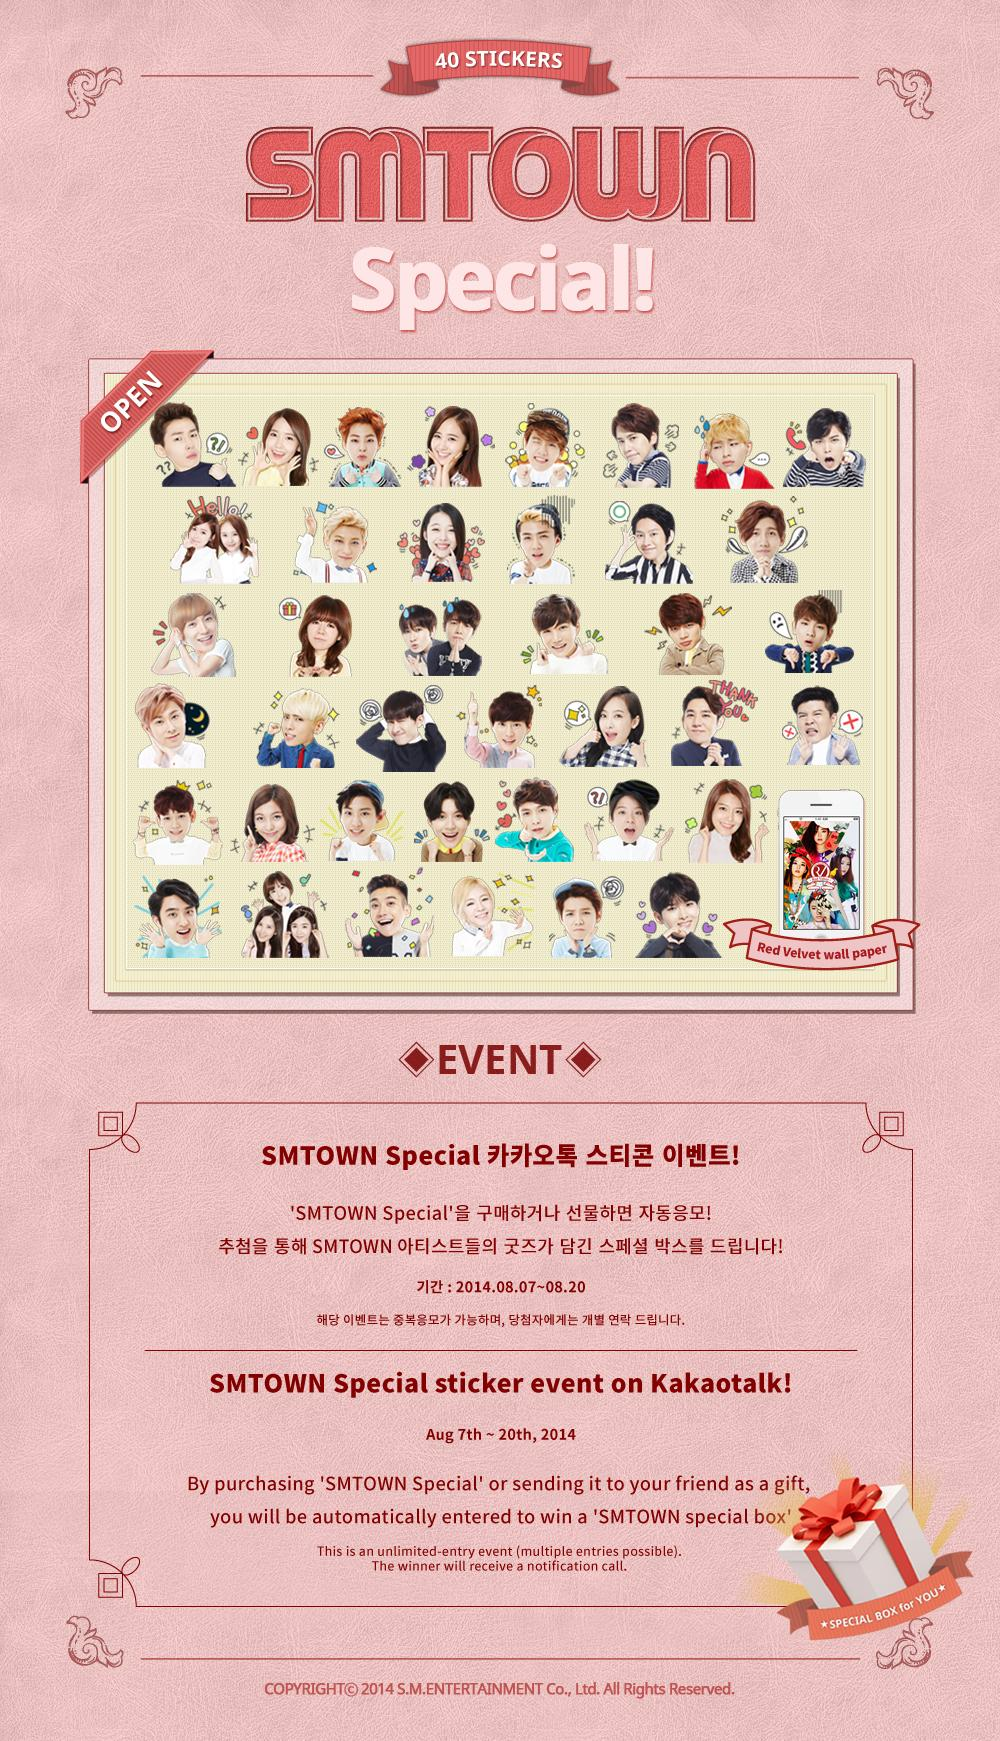 SMTOWN special